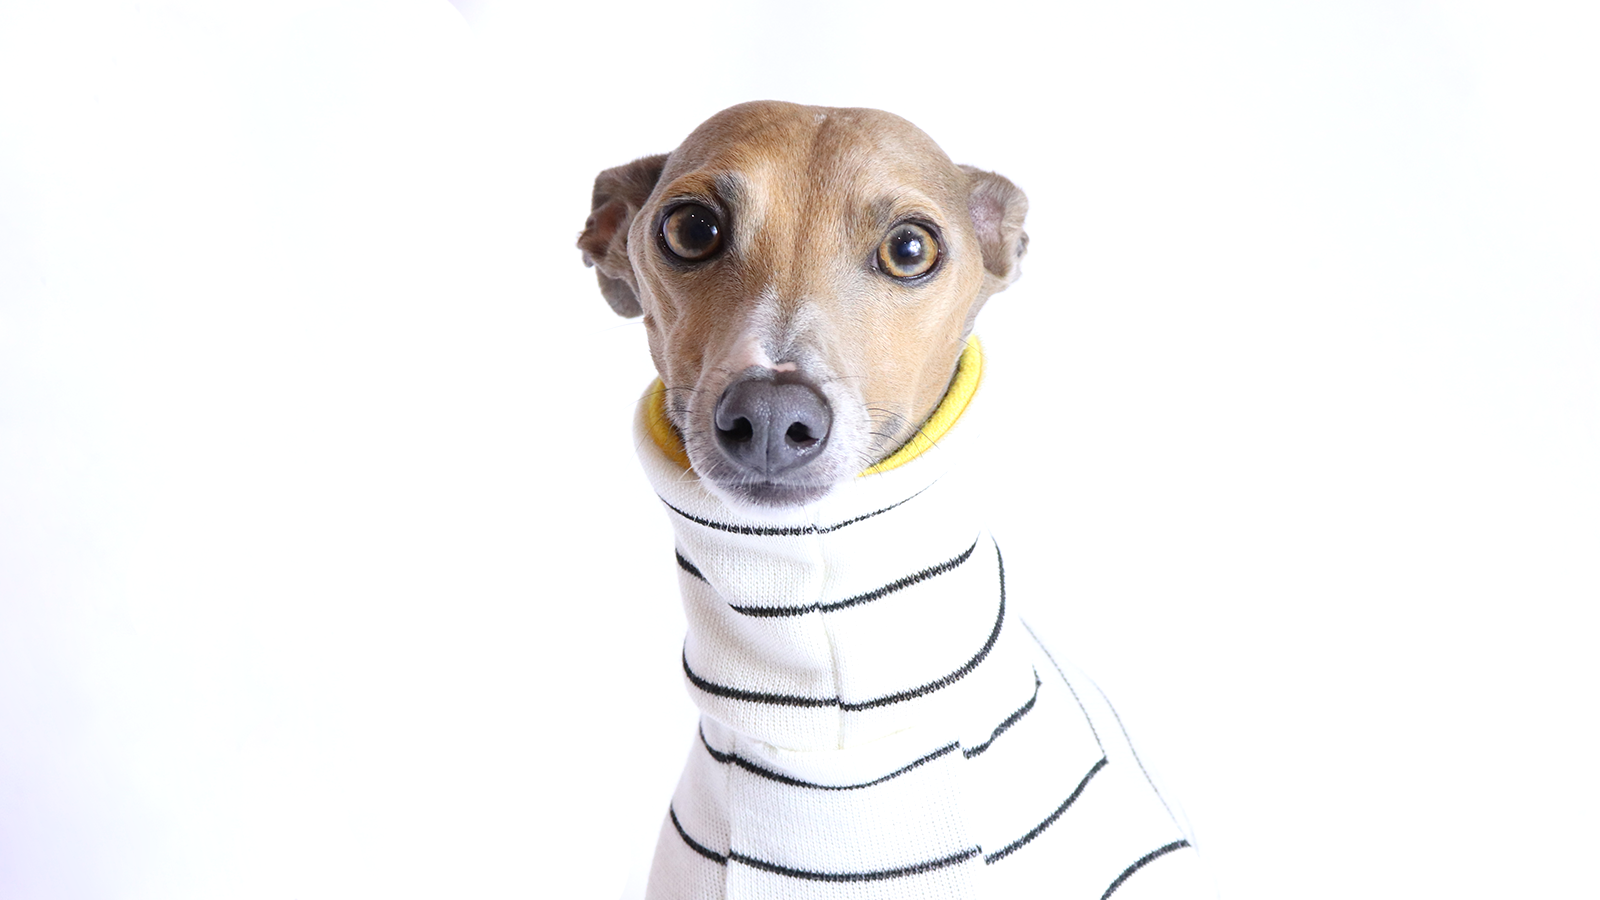 Italian Greyhound Clothing | Pros and cons to own an Iggy